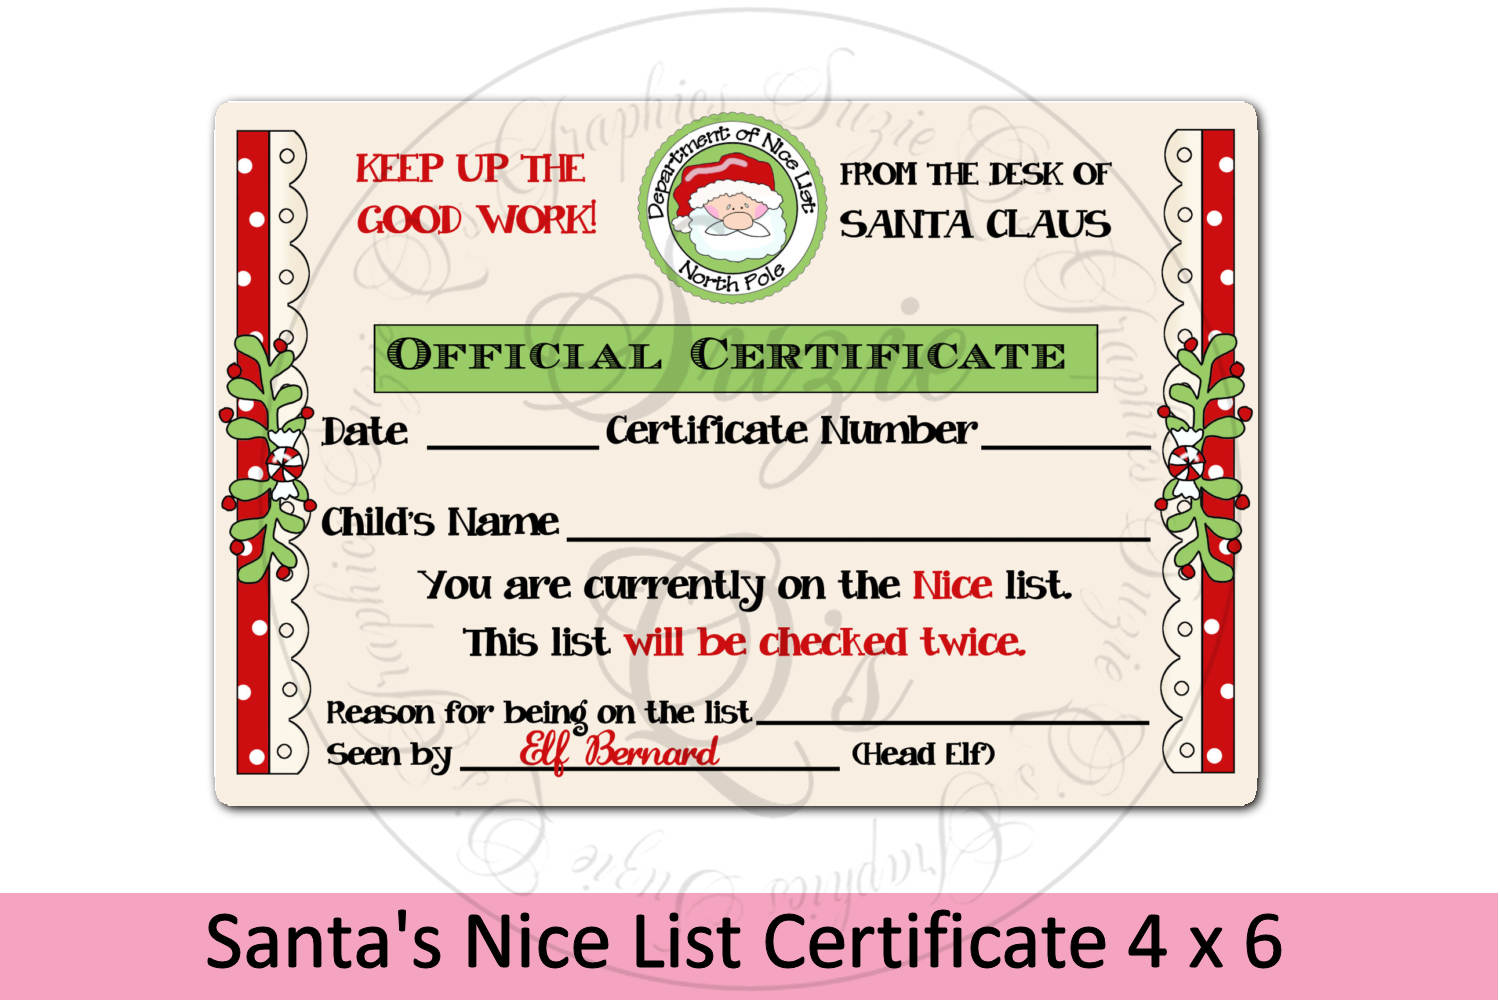 Santa's Nice List Certificate 4 x 6 inches example image 1